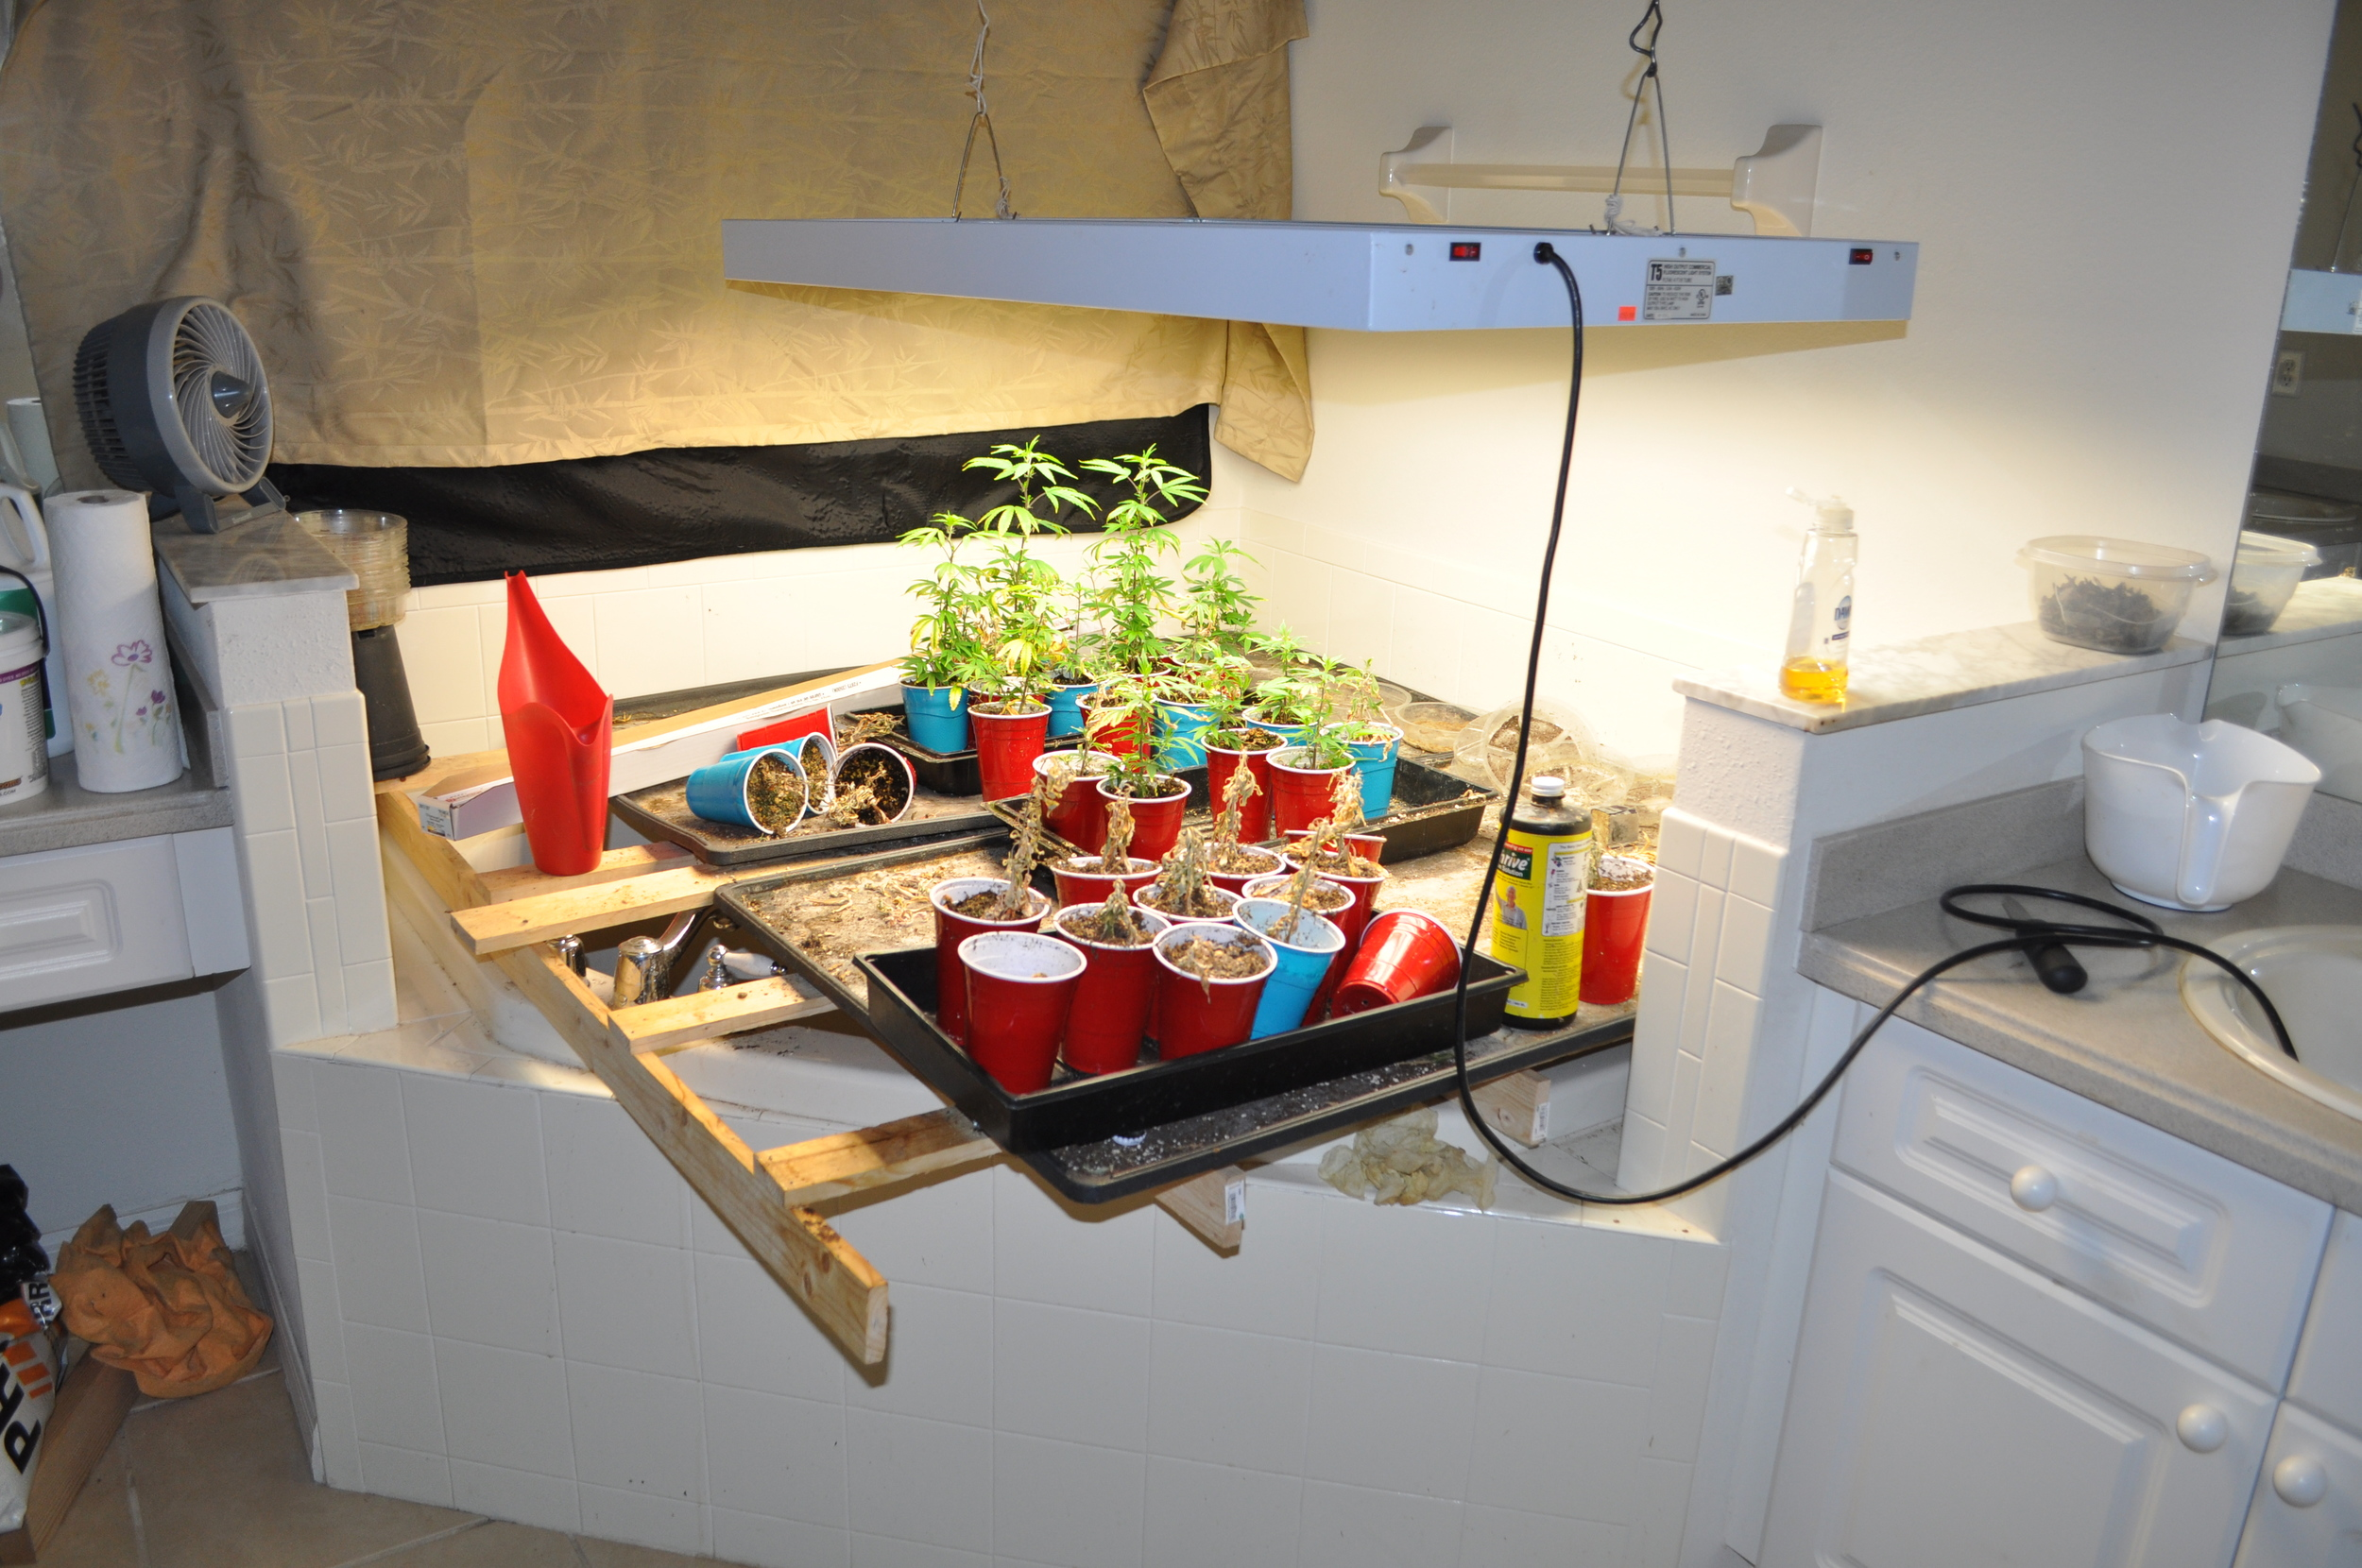 PHOTO:  The investigation yielded a total of 31 marijuana plants (18 full-grown, 13 baby plants), weighing a total of 119.7 pounds, with a street value in excess of of $75,000 to $100,000 dollars and a large amount of drug paraphernalia used to support the cultivation operation.  (Photo Courtesy of Cape Coral Police Department)